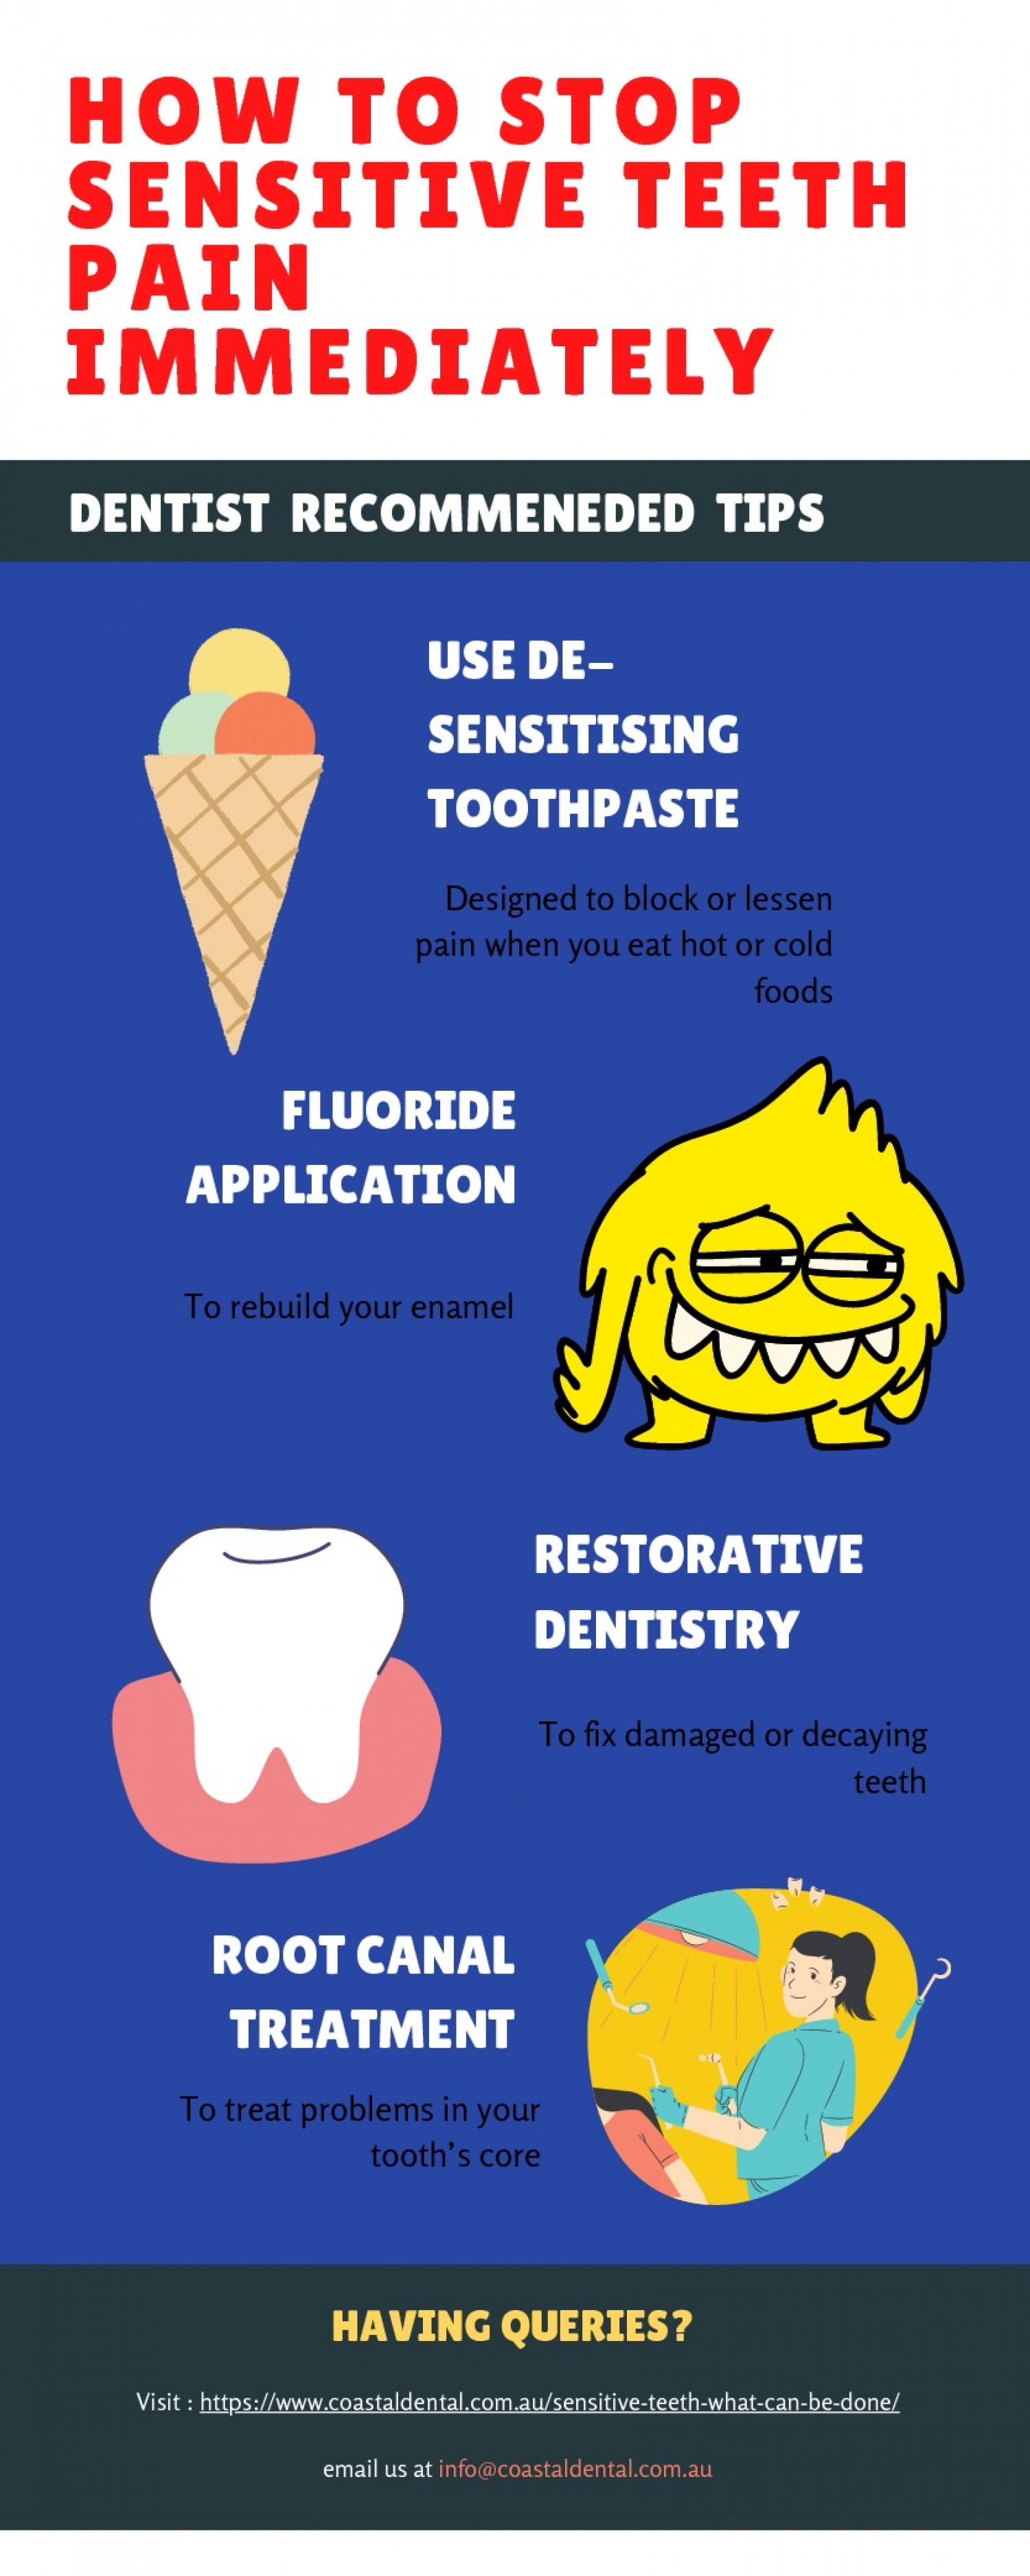 Dentist Tips to Stop Sensitive Teeth Pain Immediately Infographic